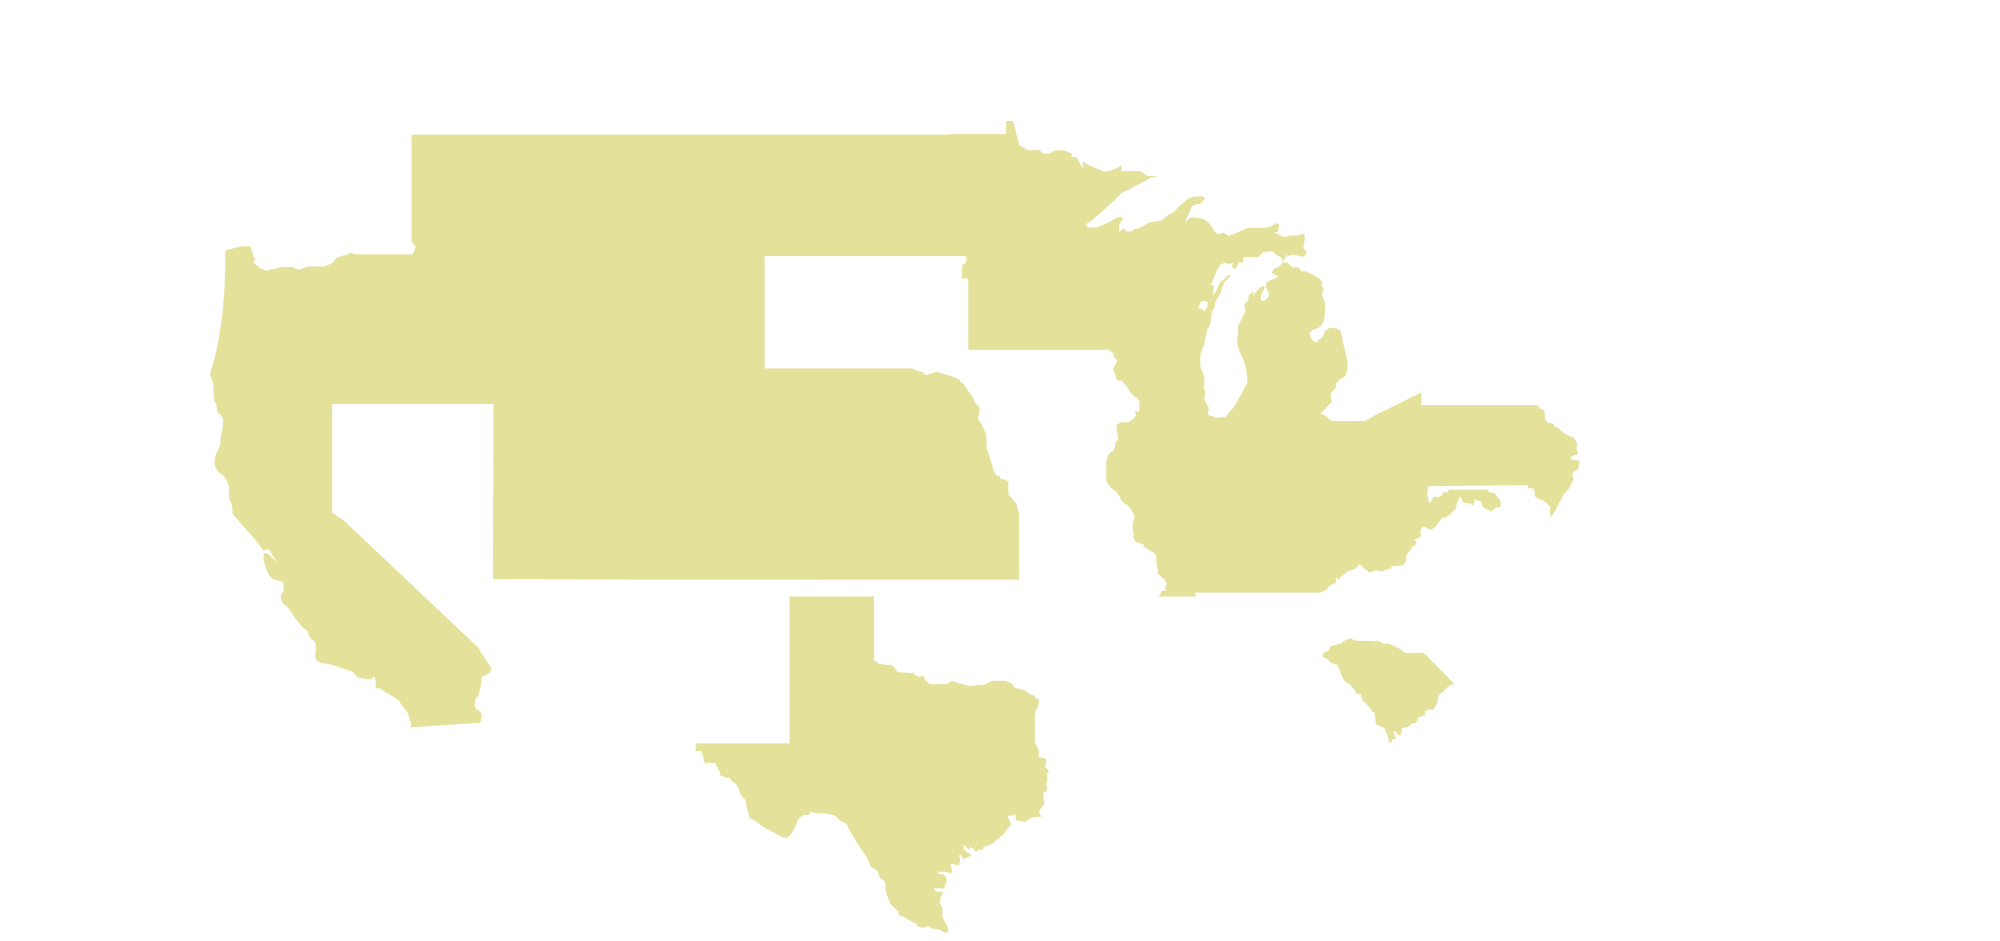 map_active_states_yellow-min